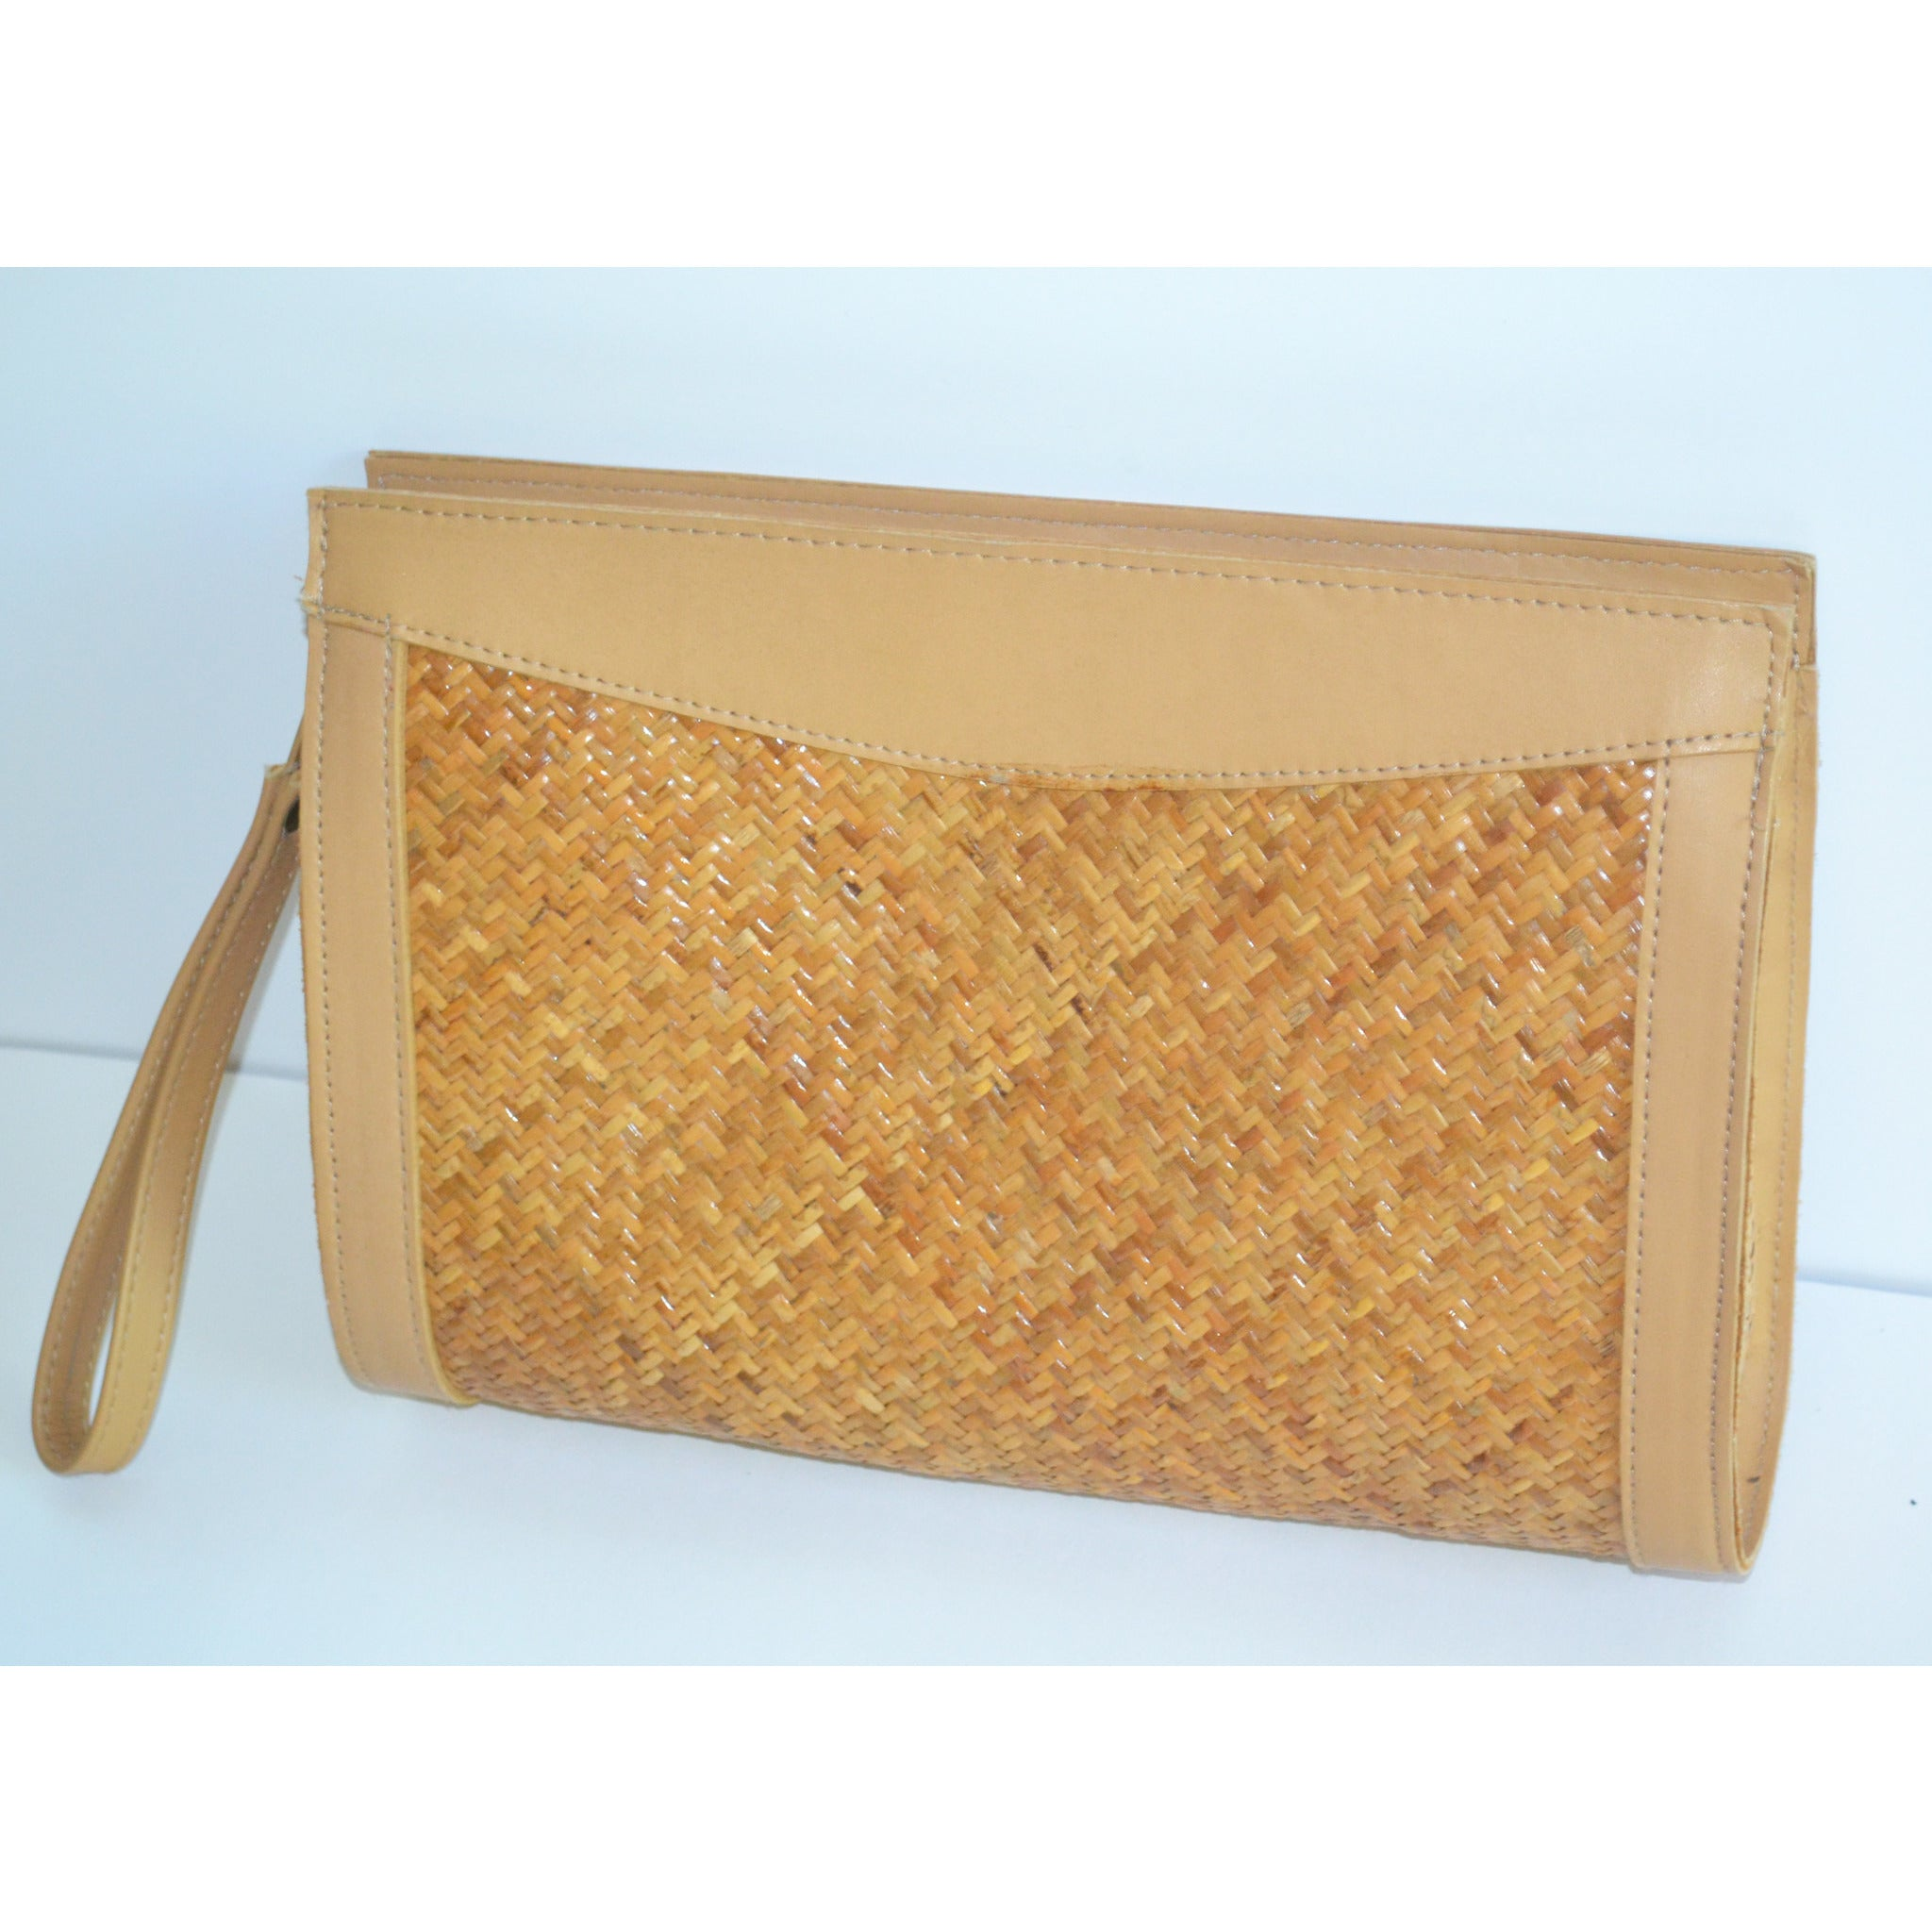 Vintage Leather & Straw Purse By Lord & Taylor